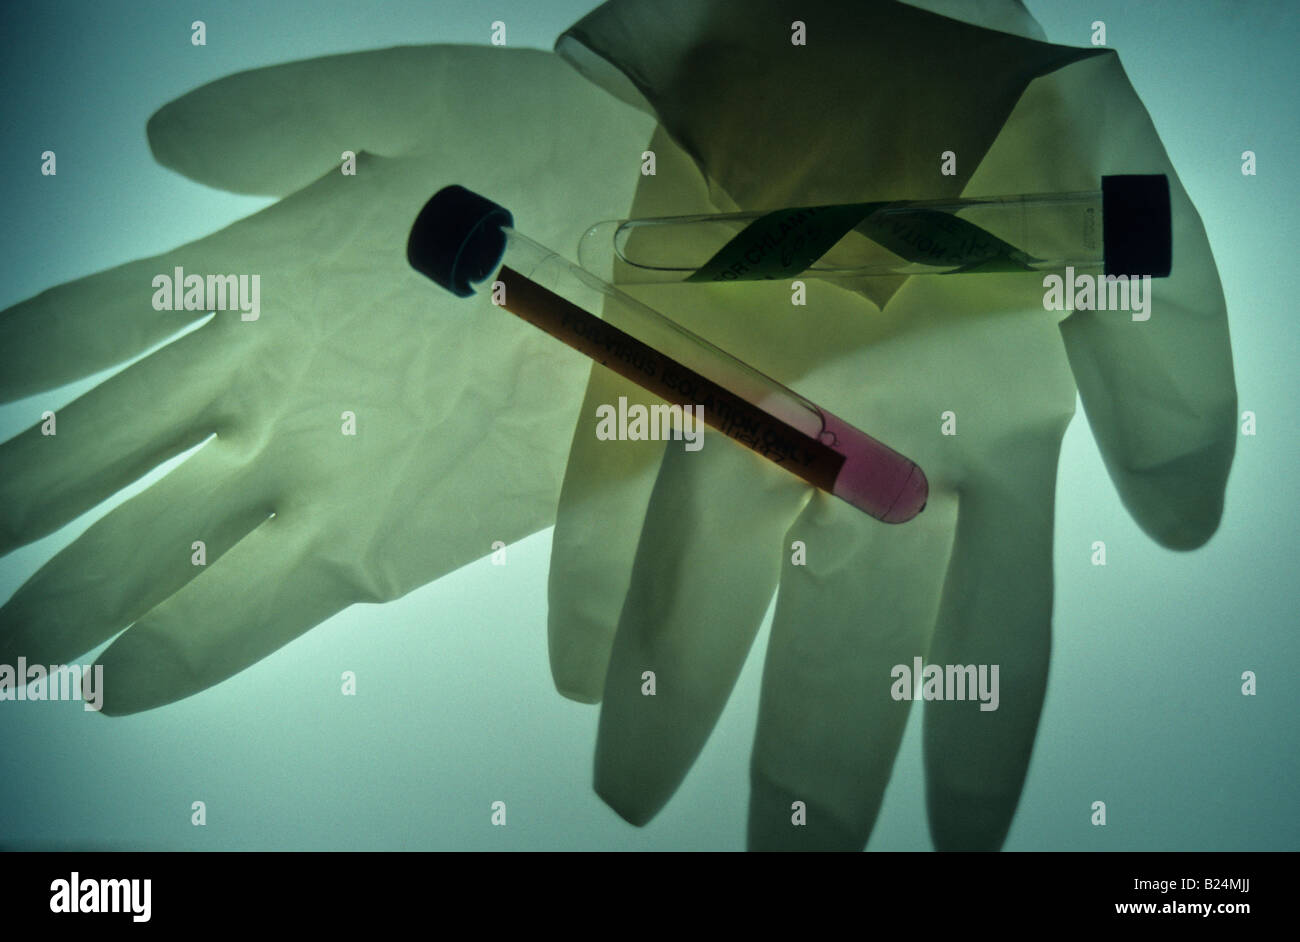 SURGICAL GLOVES AND TEST TUBES MEDICAL ICON - Stock Image